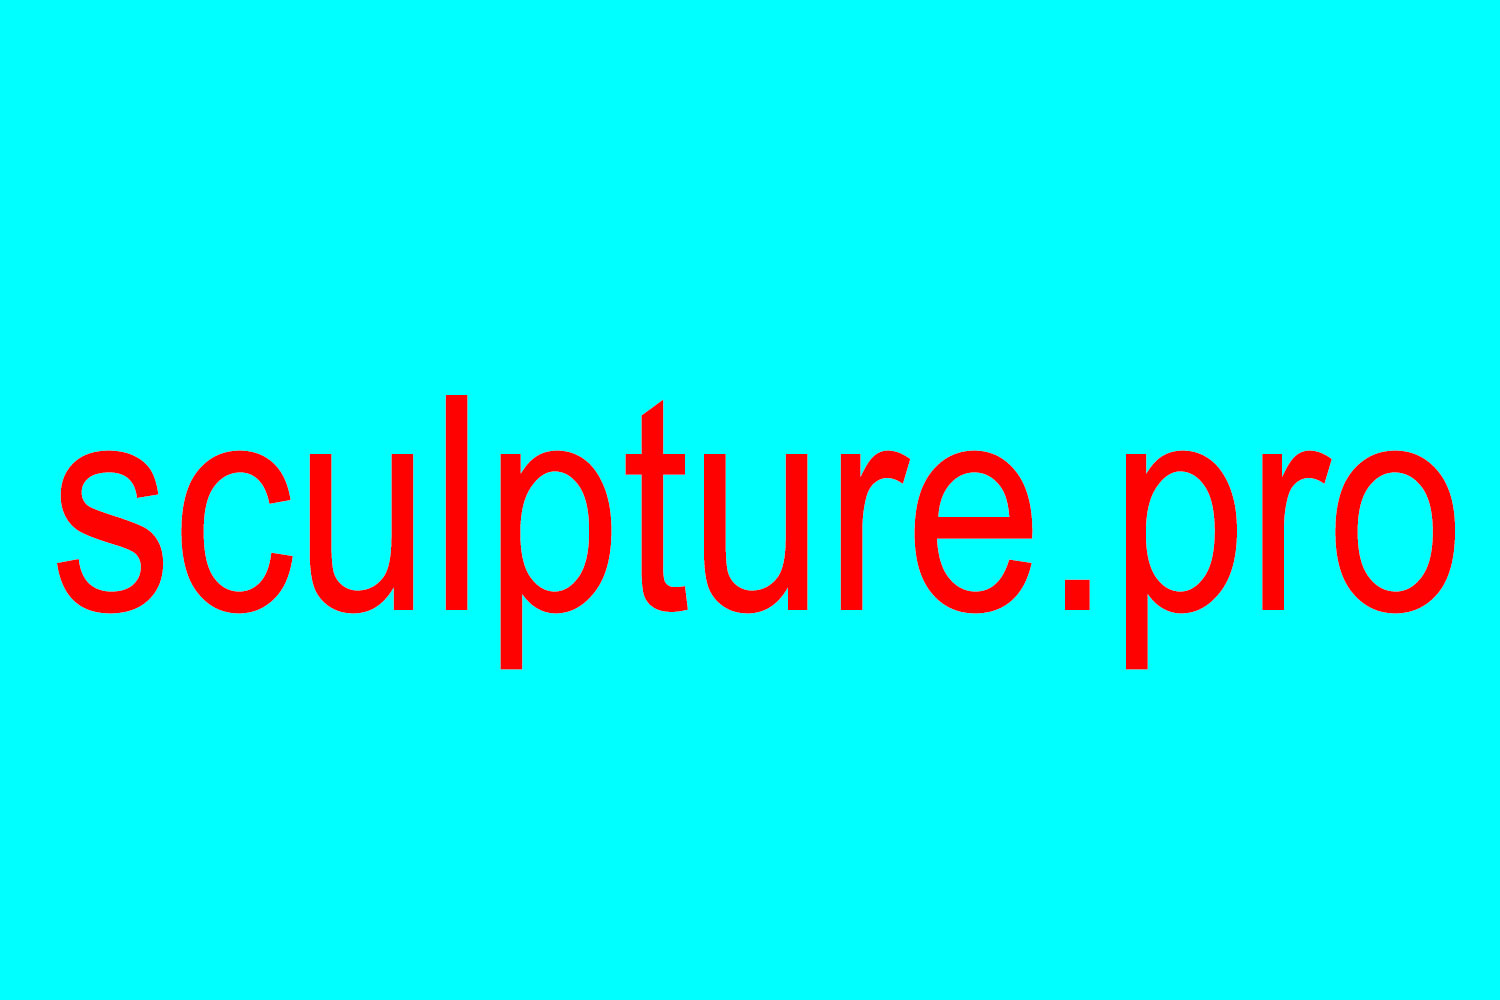 sculpture-professional-visual-fine-art-arts-design